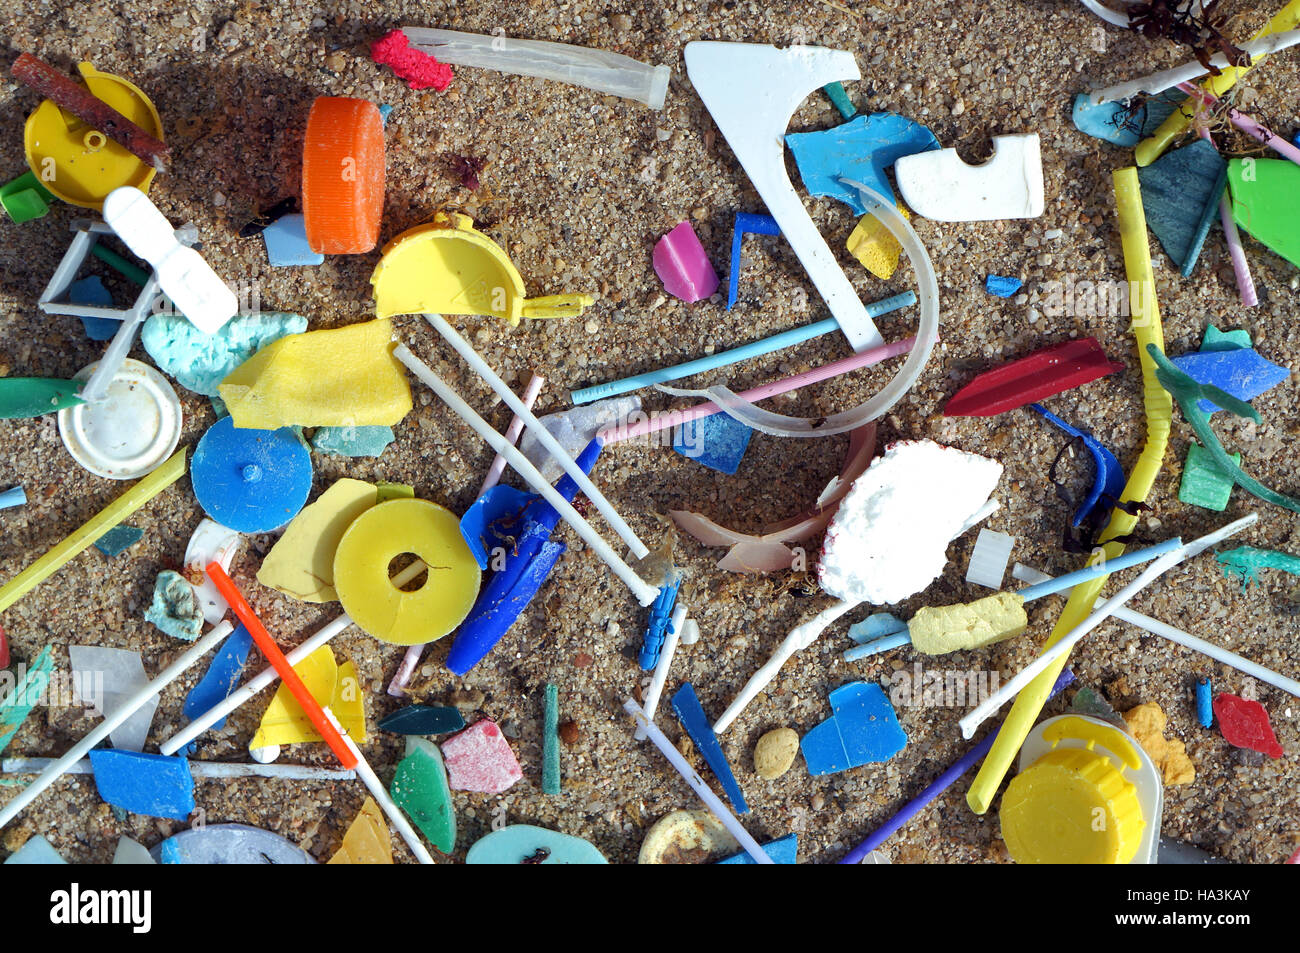 Plastic debris washed ashore on the beach. Notice the large amount of small plastic tubes from cotton swabs. Plastic - Stock Image